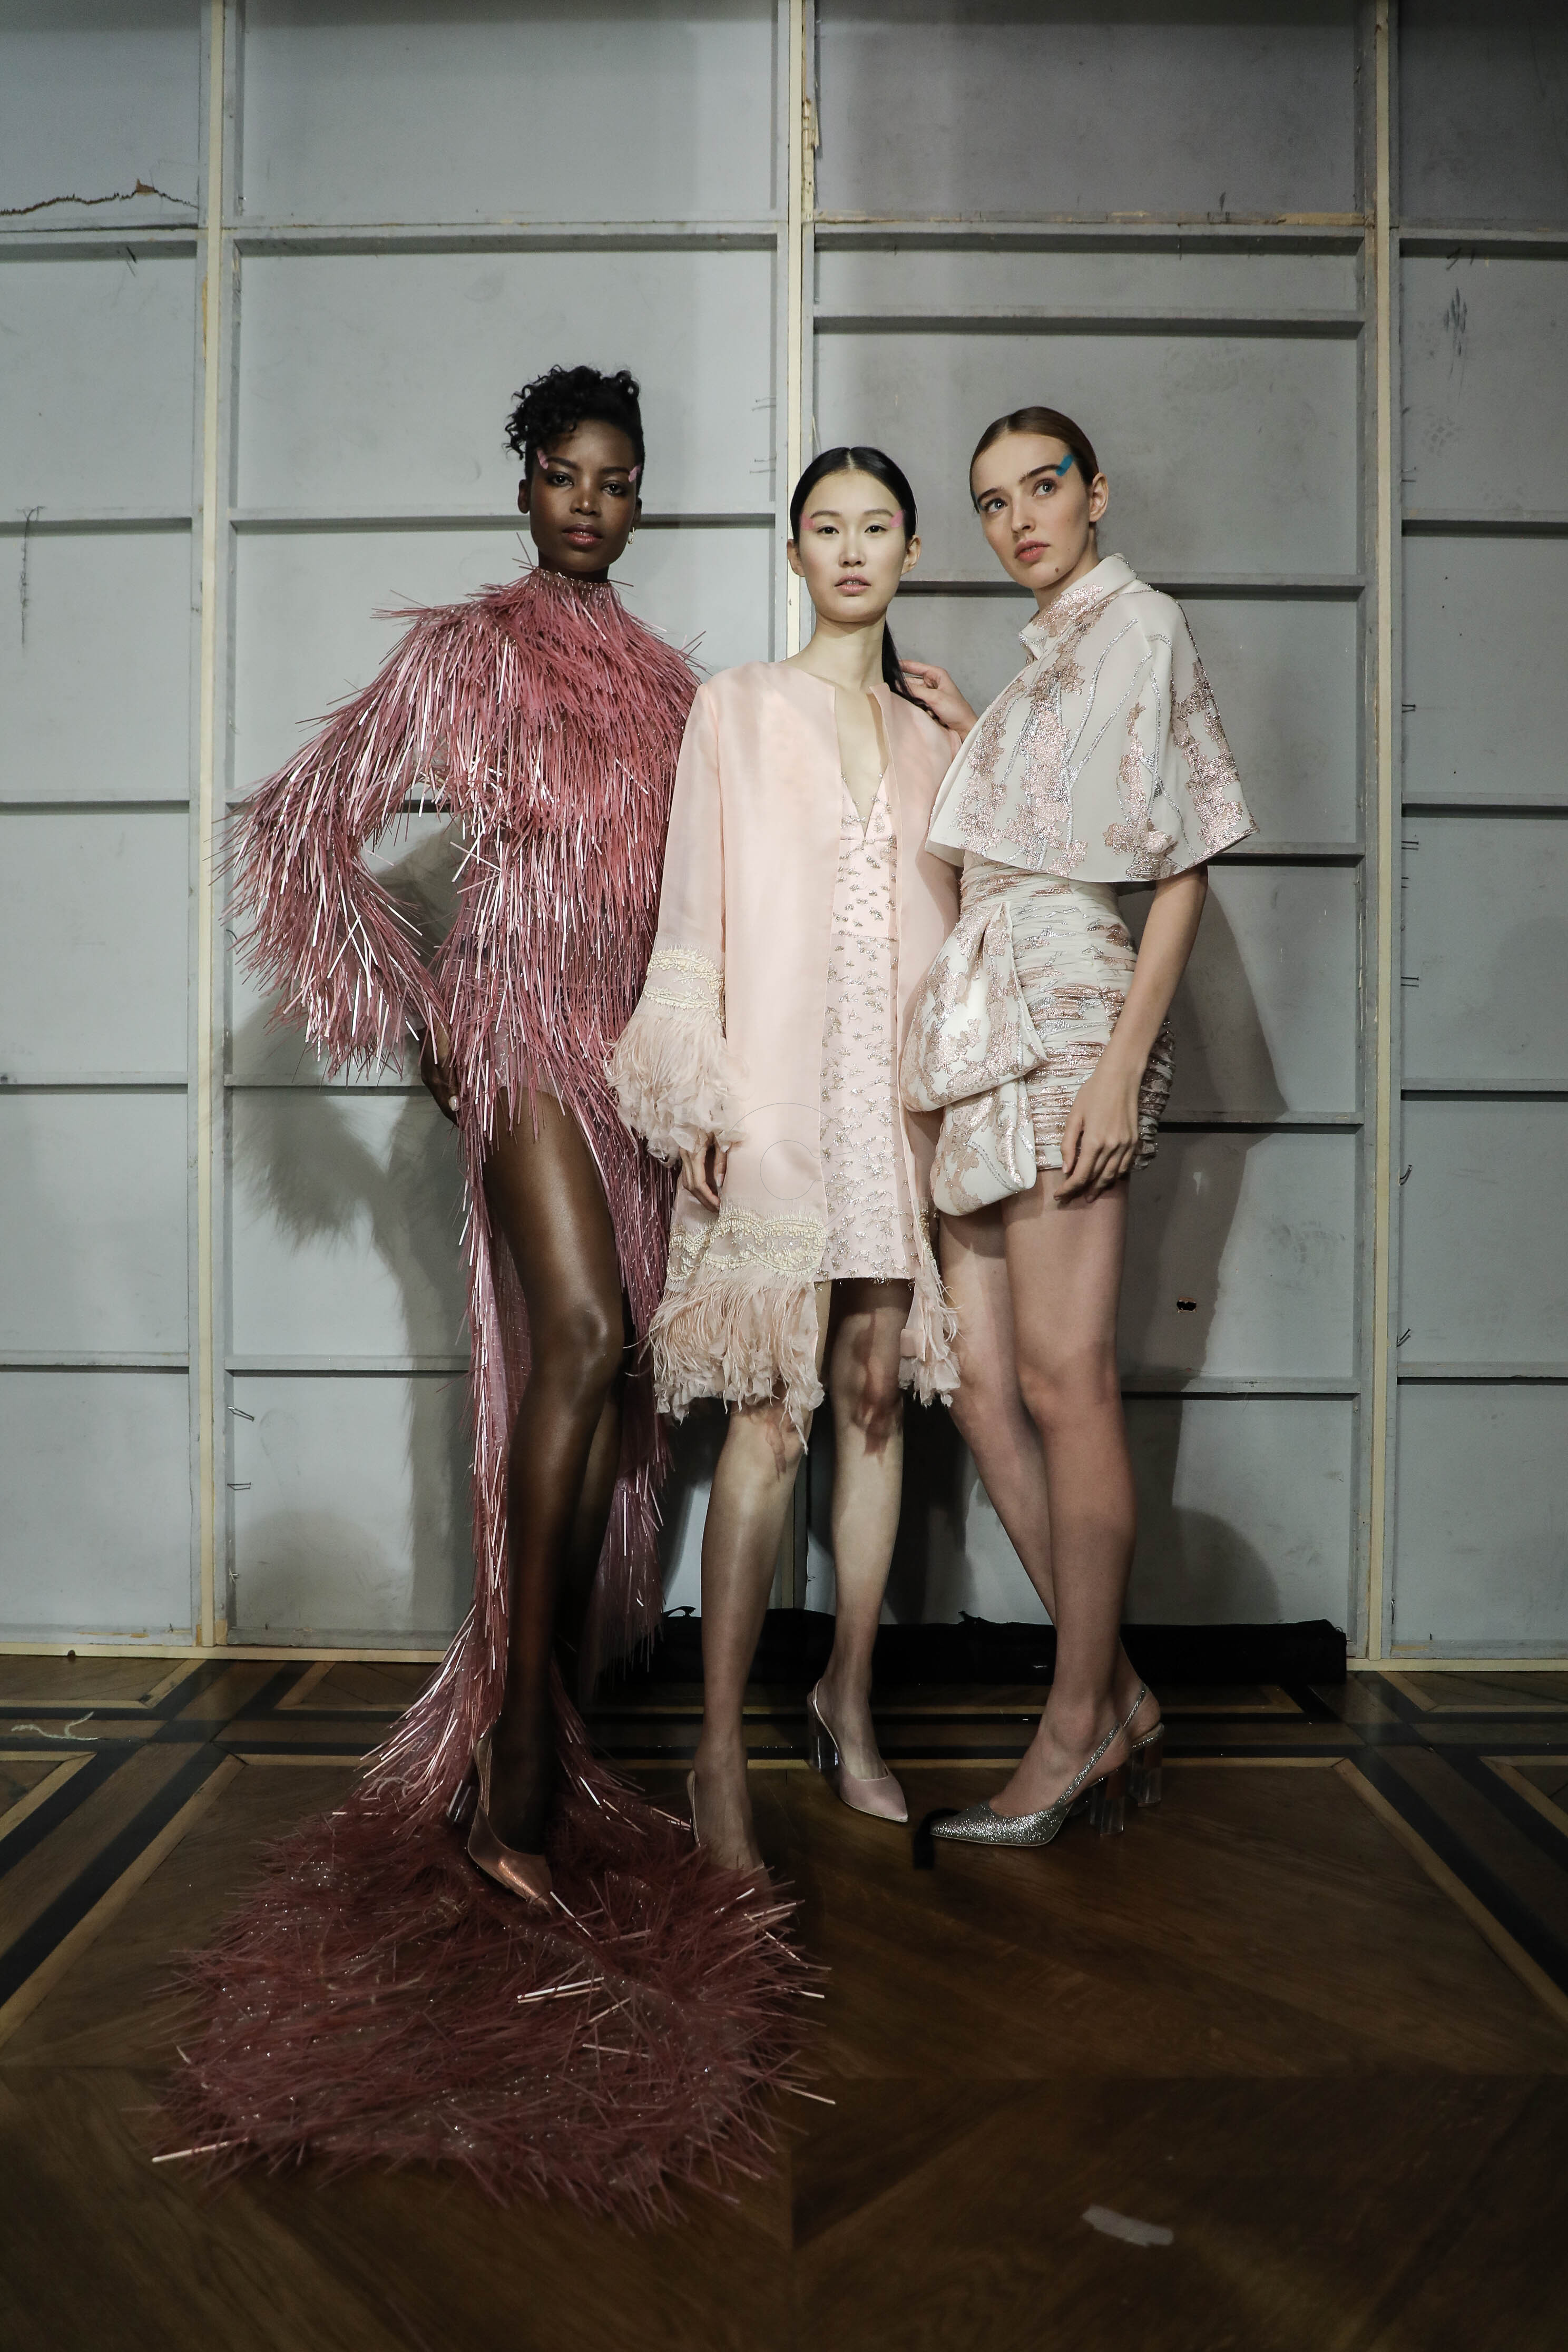 A Model wearing an outfit from the Haute Couture collections, summer 2019, original creation, during the Haute Couture Fashion Week in Paris, from the house of Celia Krithariotis